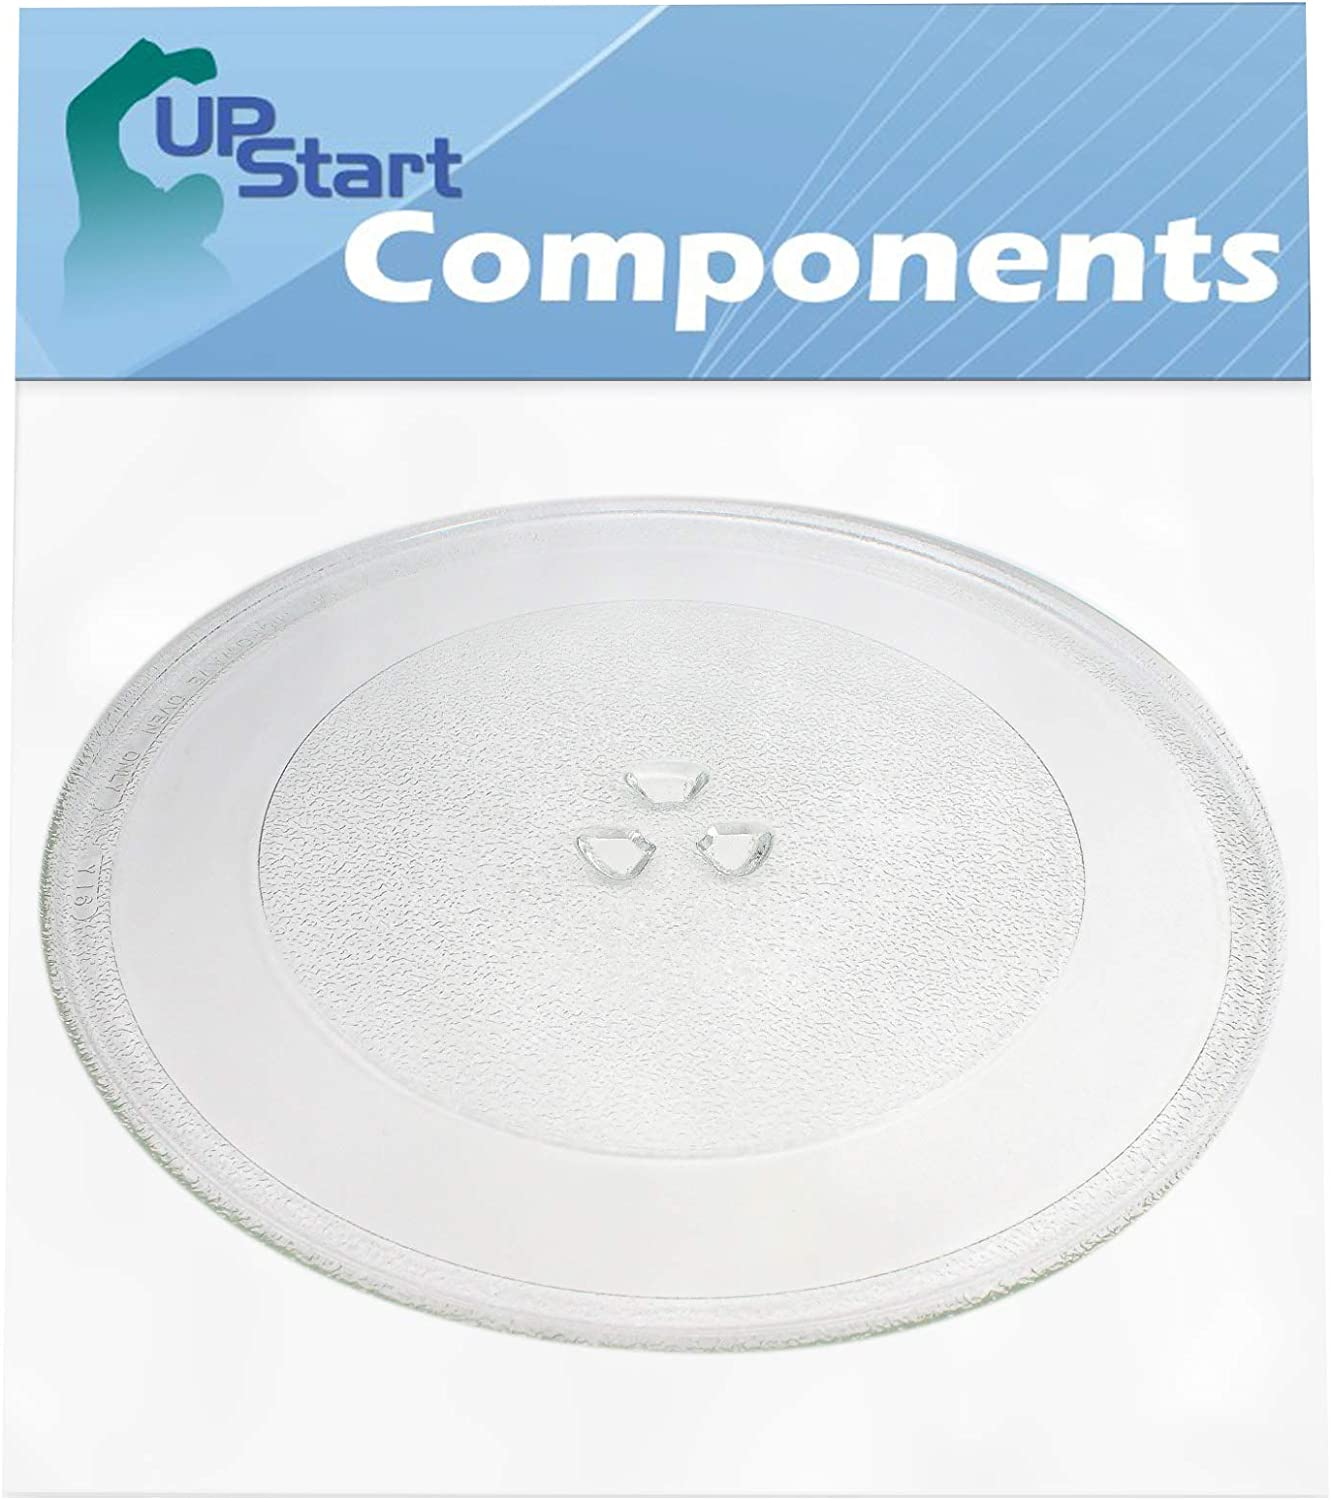 WP8172138 Microwave Glass Turntable Plate Replacement for Amana MVH250W (P1323217M) - Compatible with 8172138 4358641 12 3/4 Inch Glass Tray